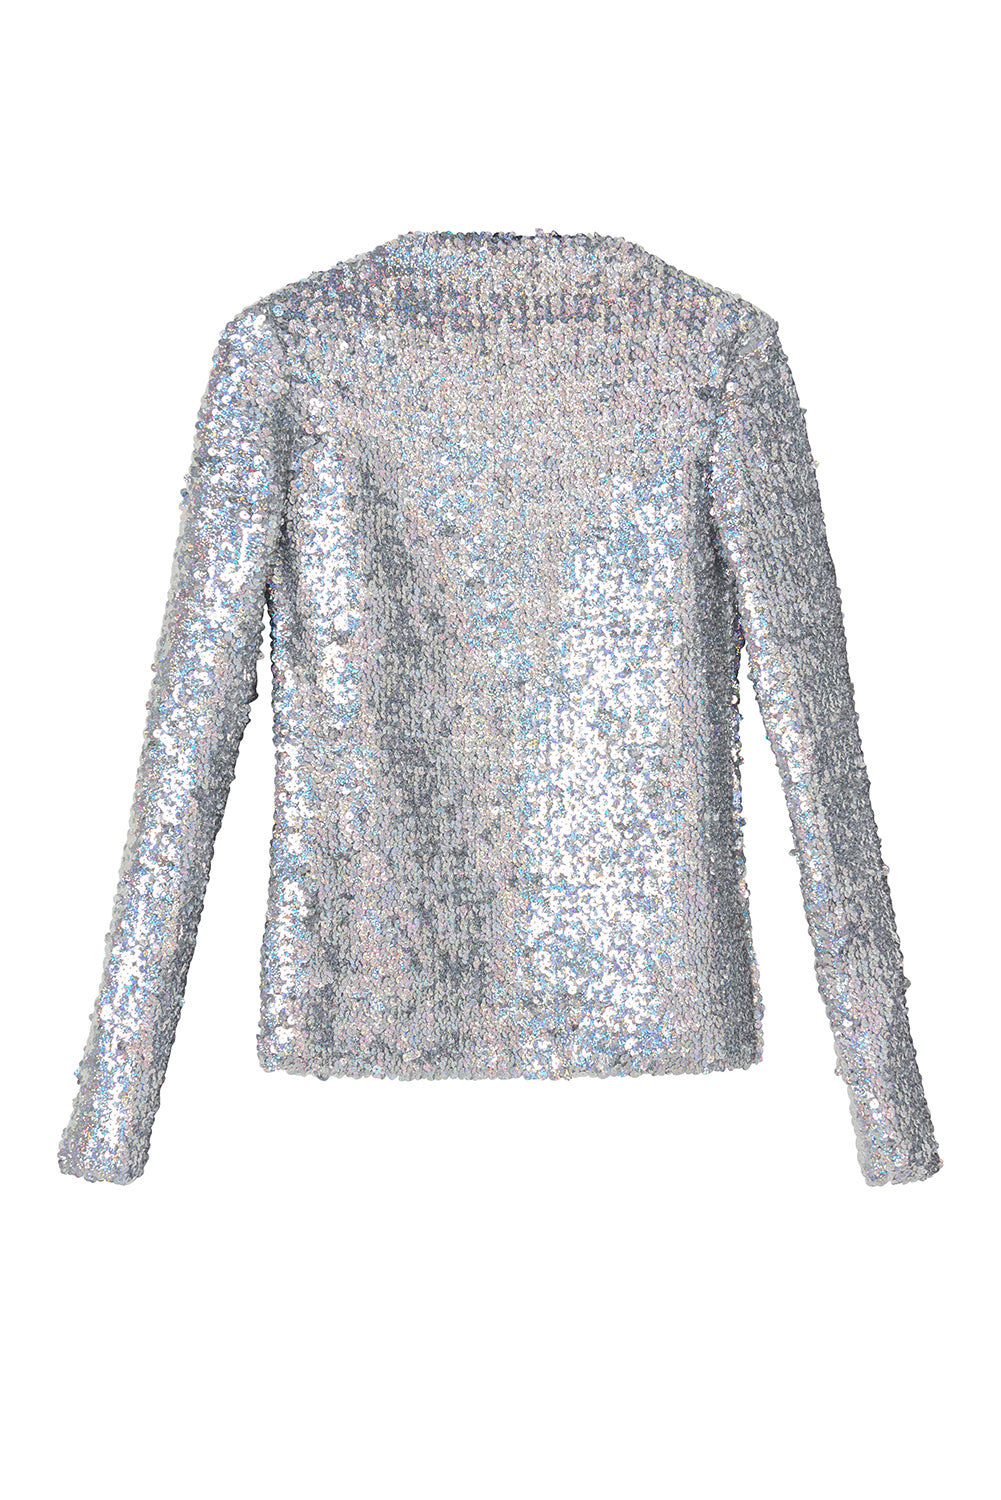 Holography Top